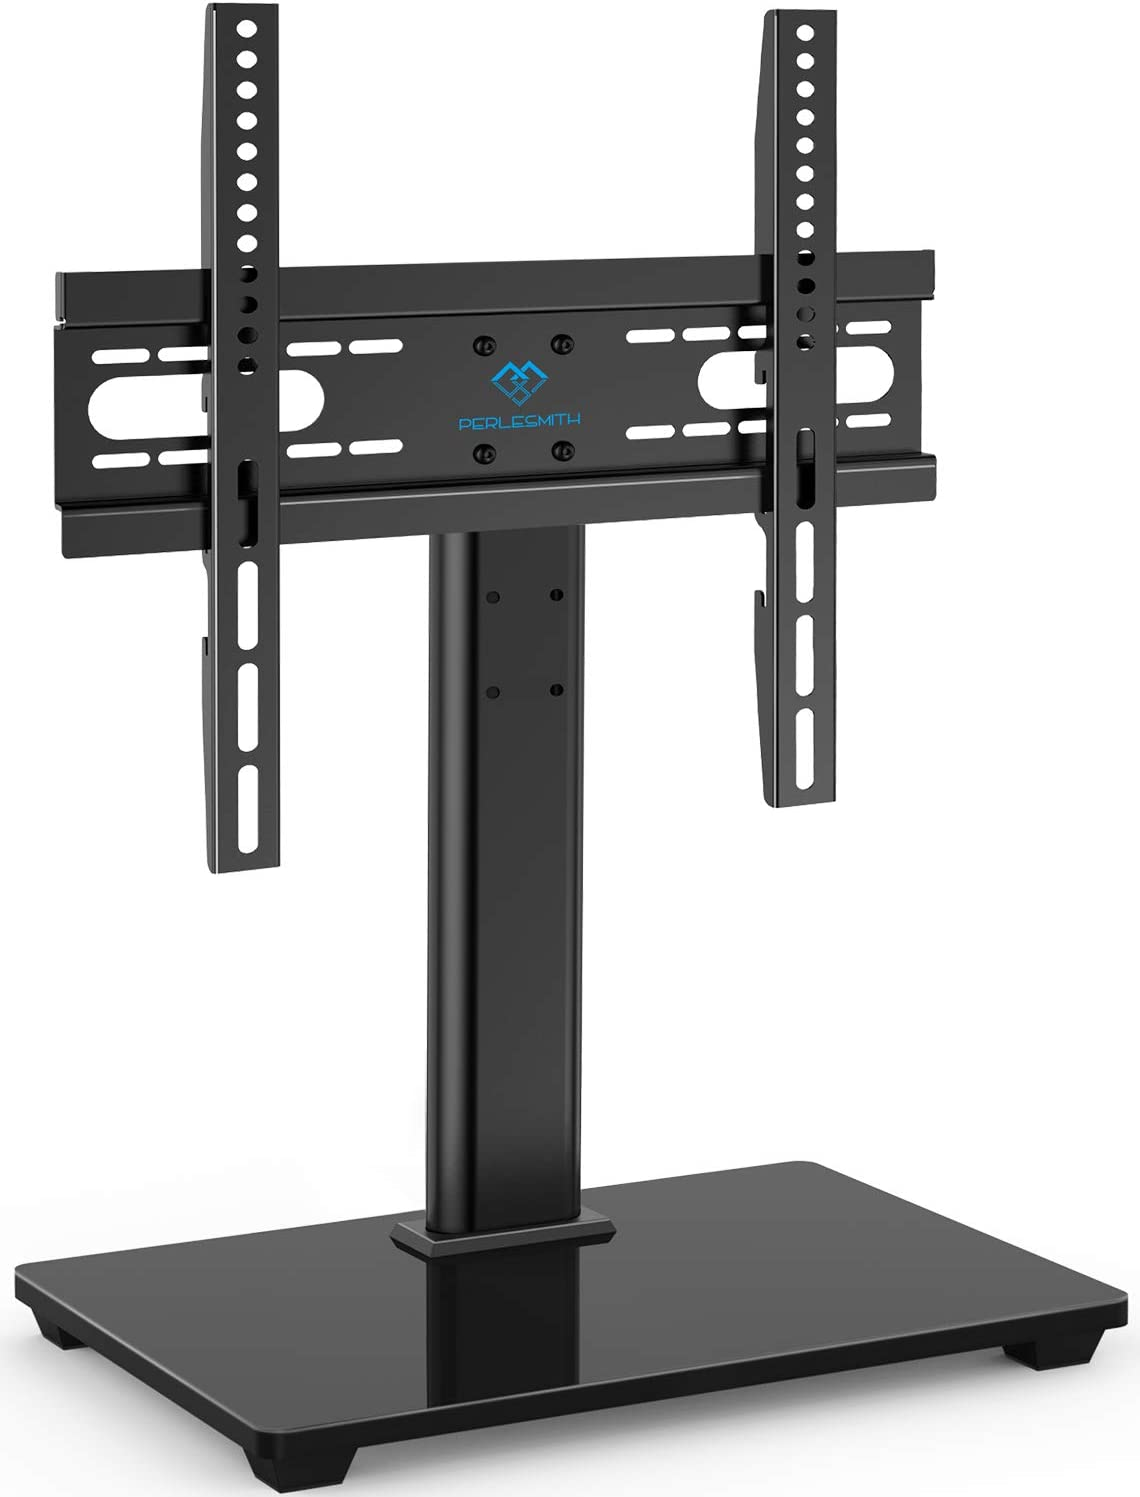 Amazon.com: PERLESMITH Universal TV Stand - Table Top TV Stand for